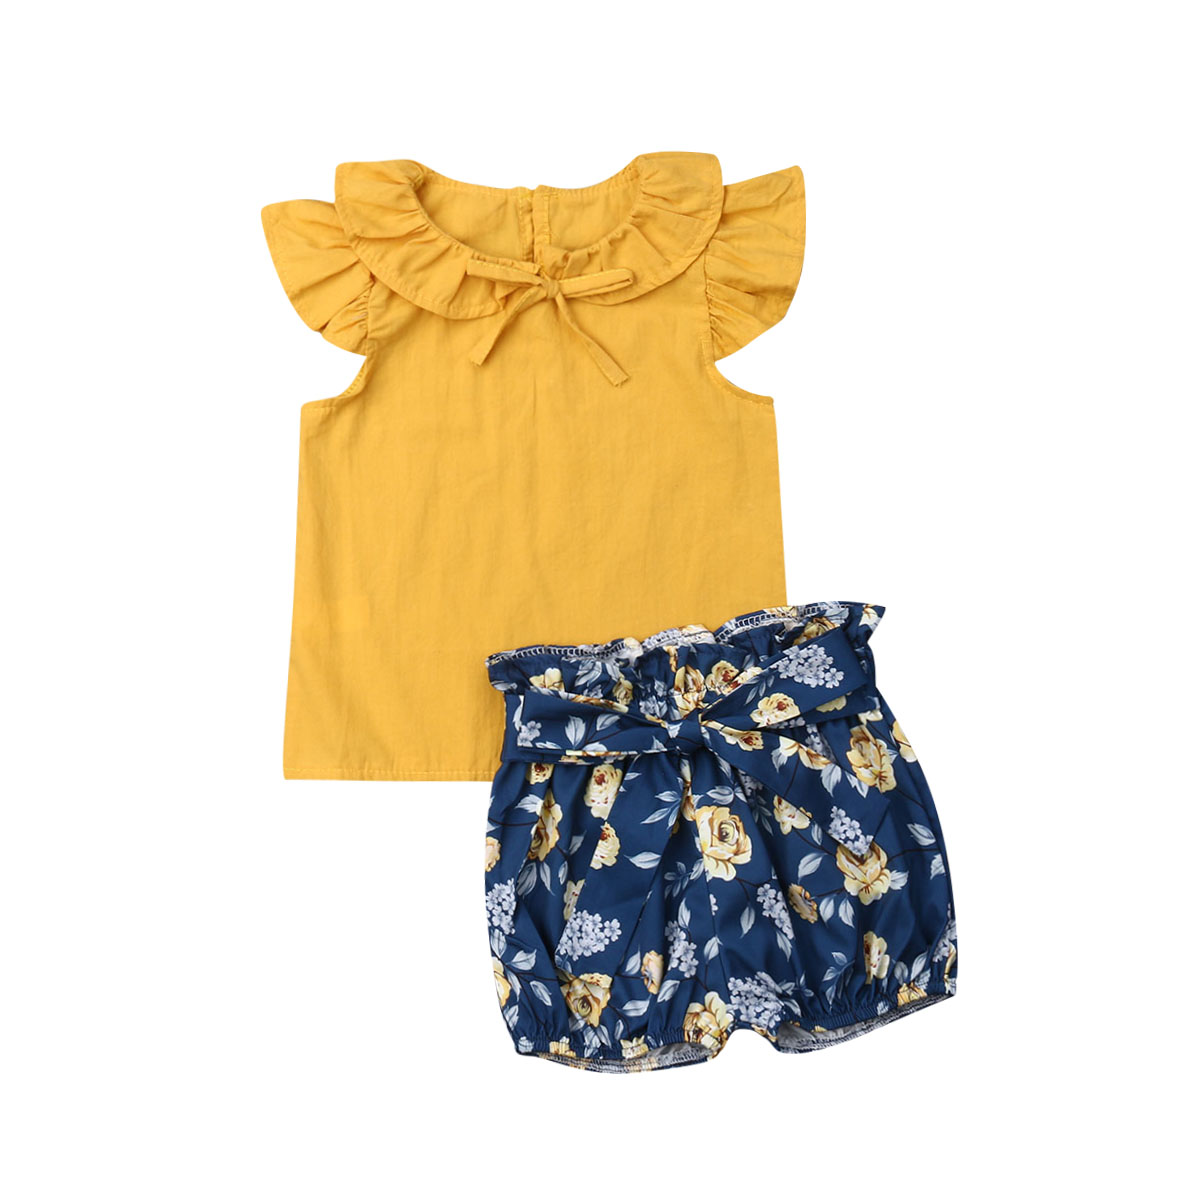 2Pcs Infant Toddle Baby Girl Floral Print Long Sleeve Top Yellow Bowknot Short Clothes Set